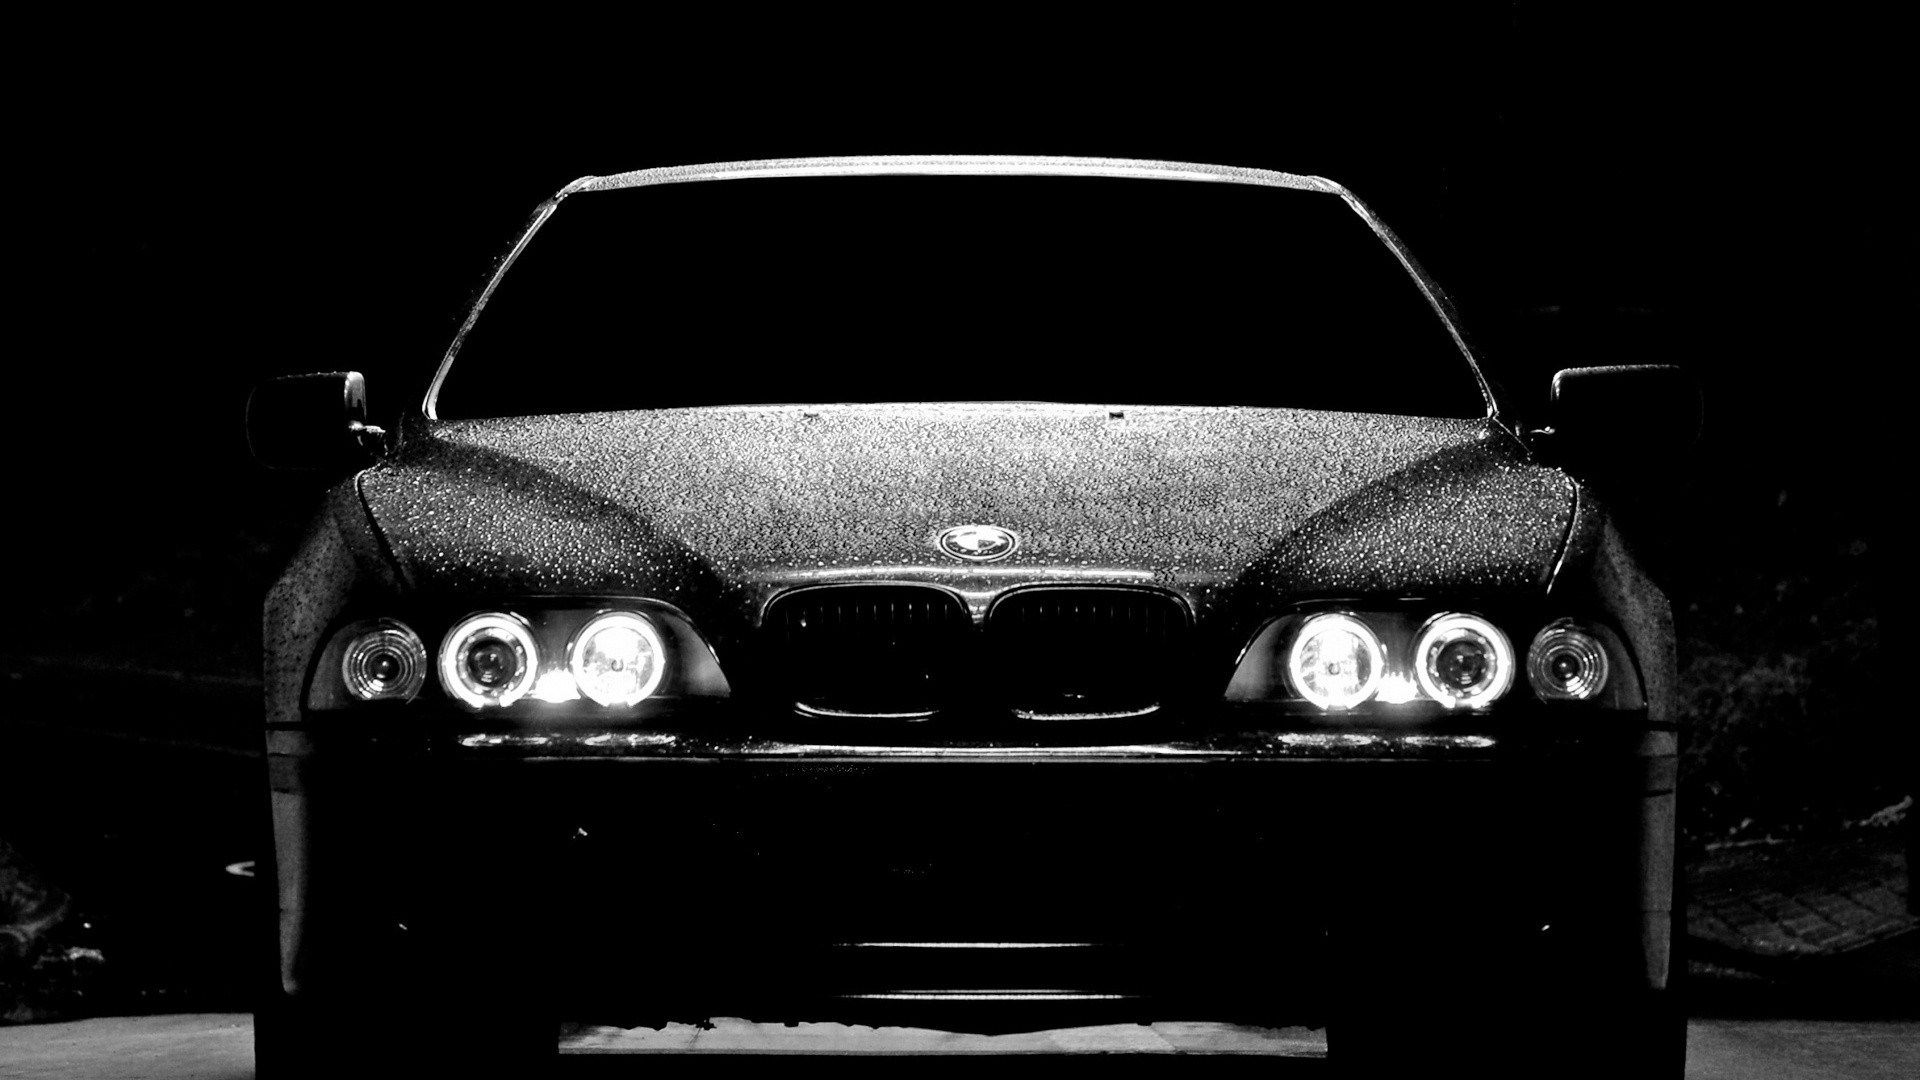 Bmw M5 Black Wallpaper New Hd Cars Wallpaper Bmw Cars Bmw Bmw